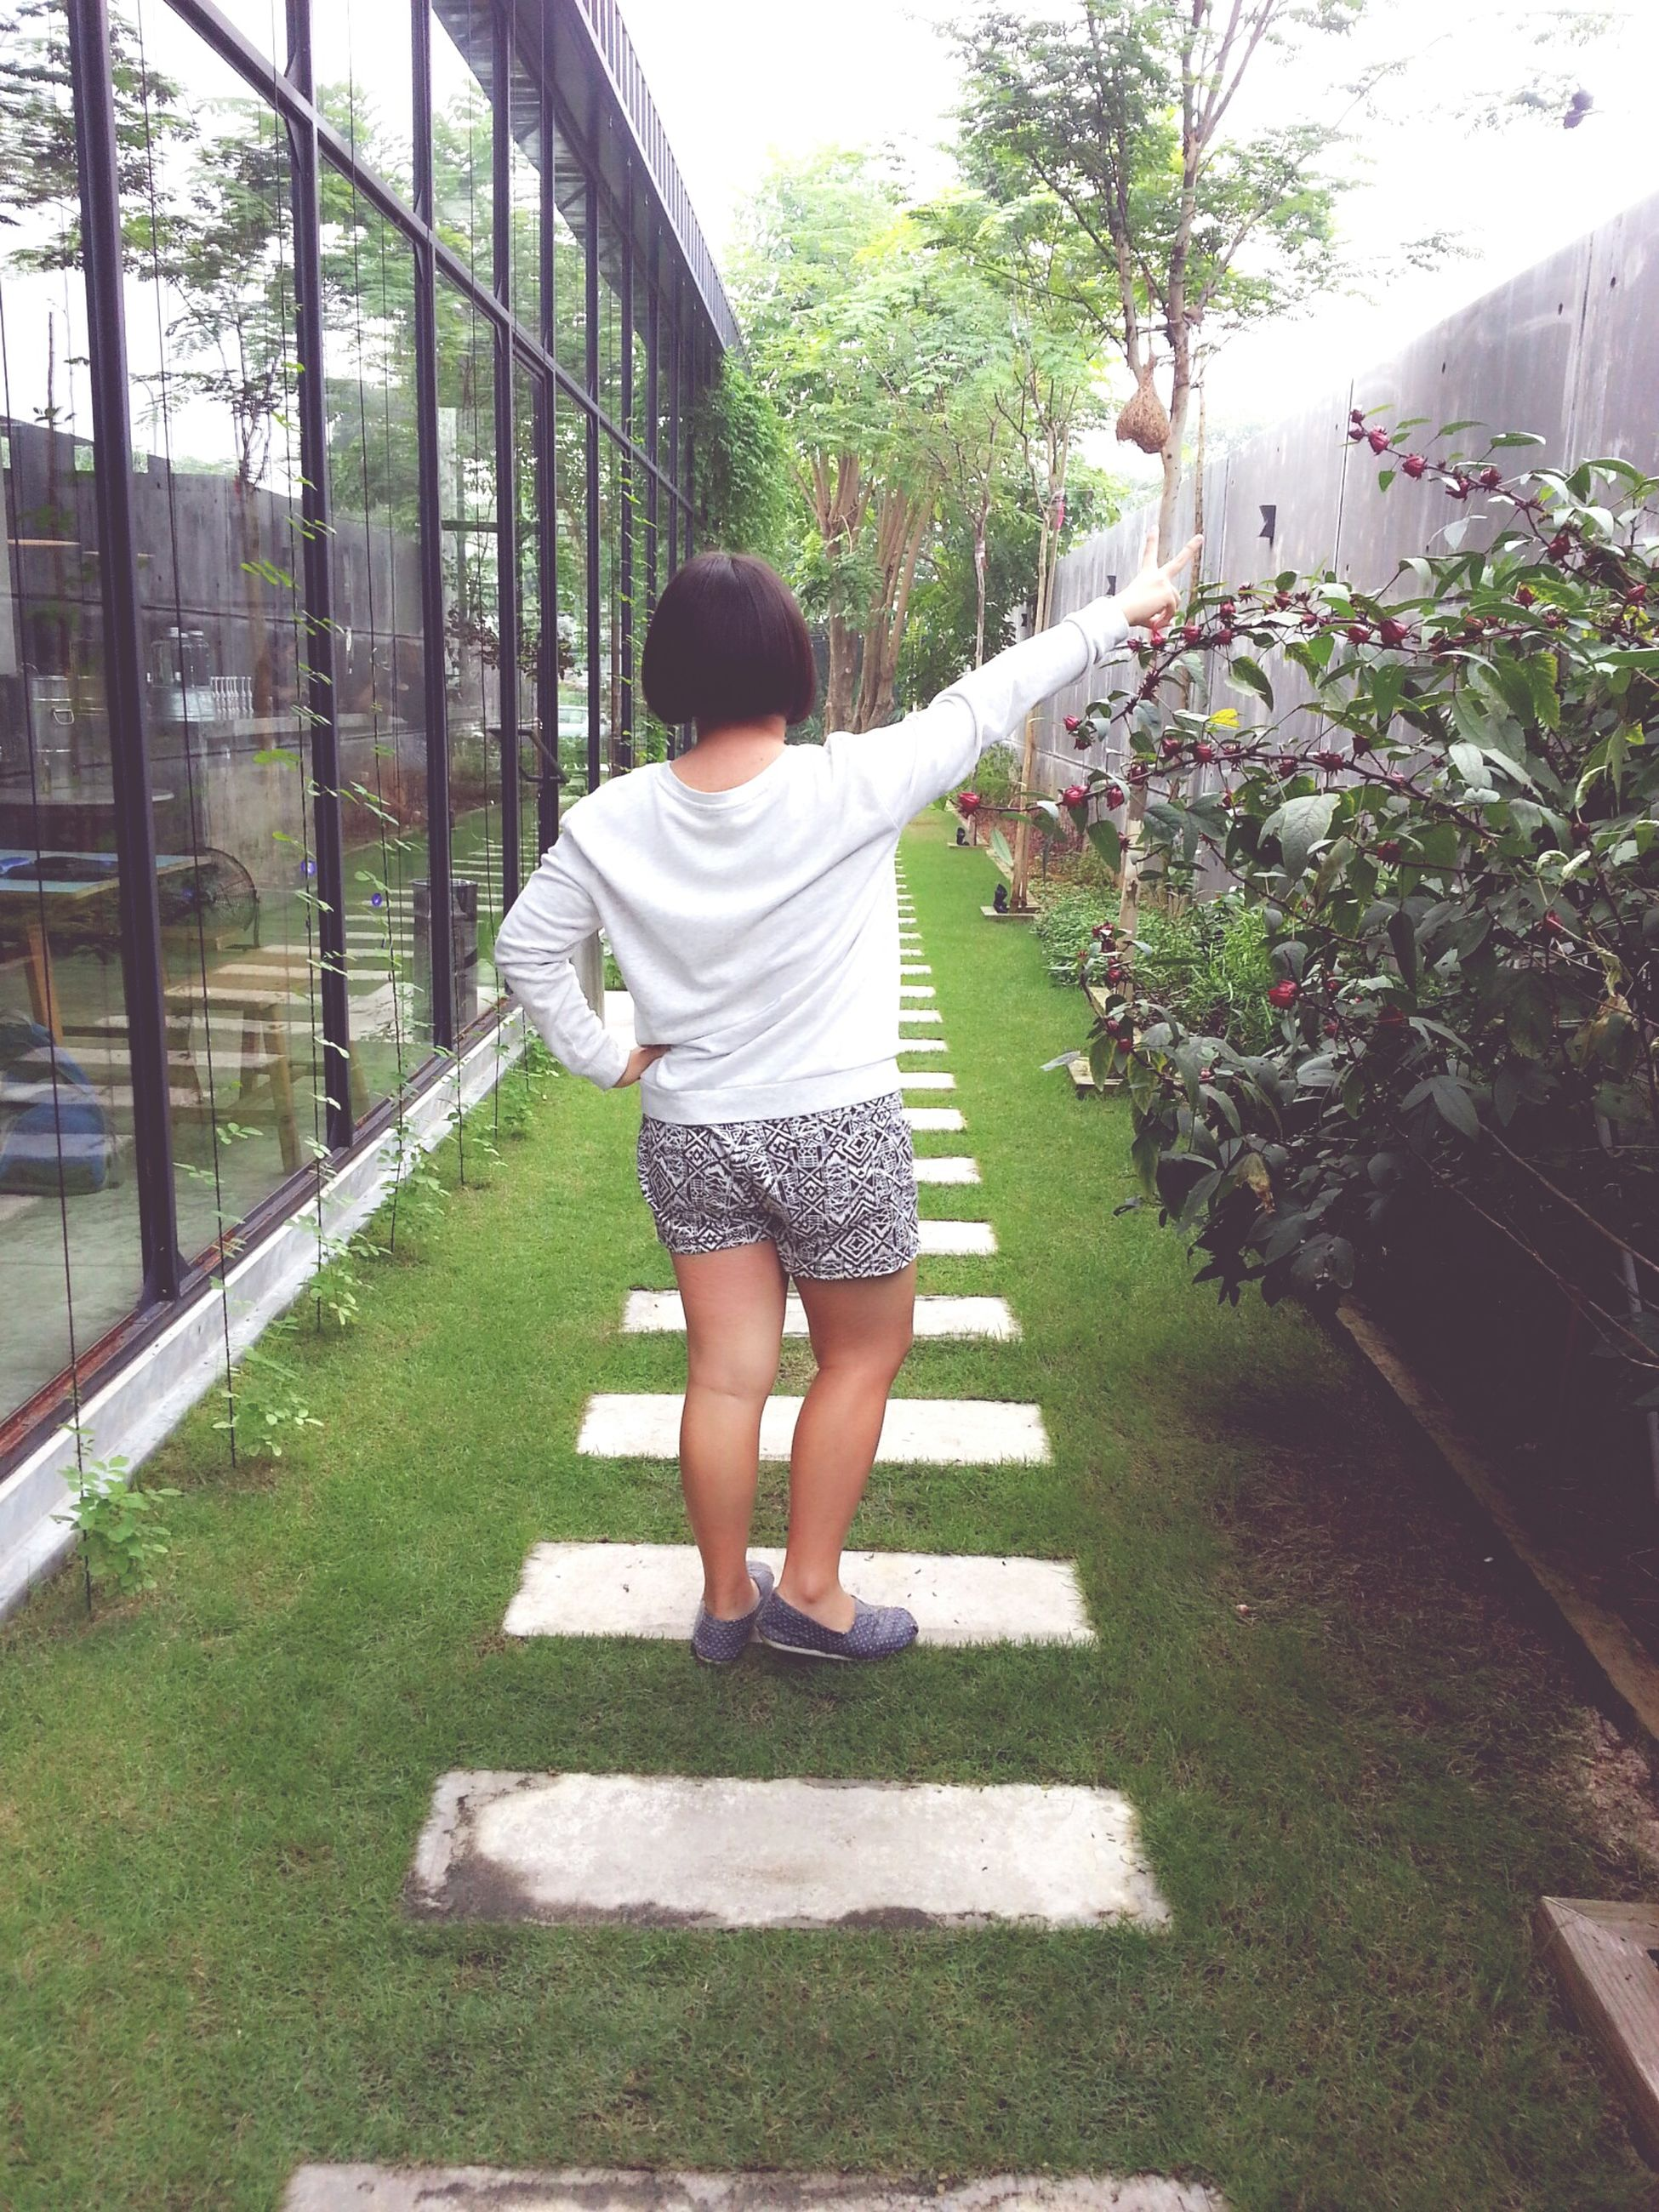 full length, childhood, railing, casual clothing, lifestyles, tree, leisure activity, rear view, grass, elementary age, park - man made space, standing, sunlight, person, boys, day, plant, girls